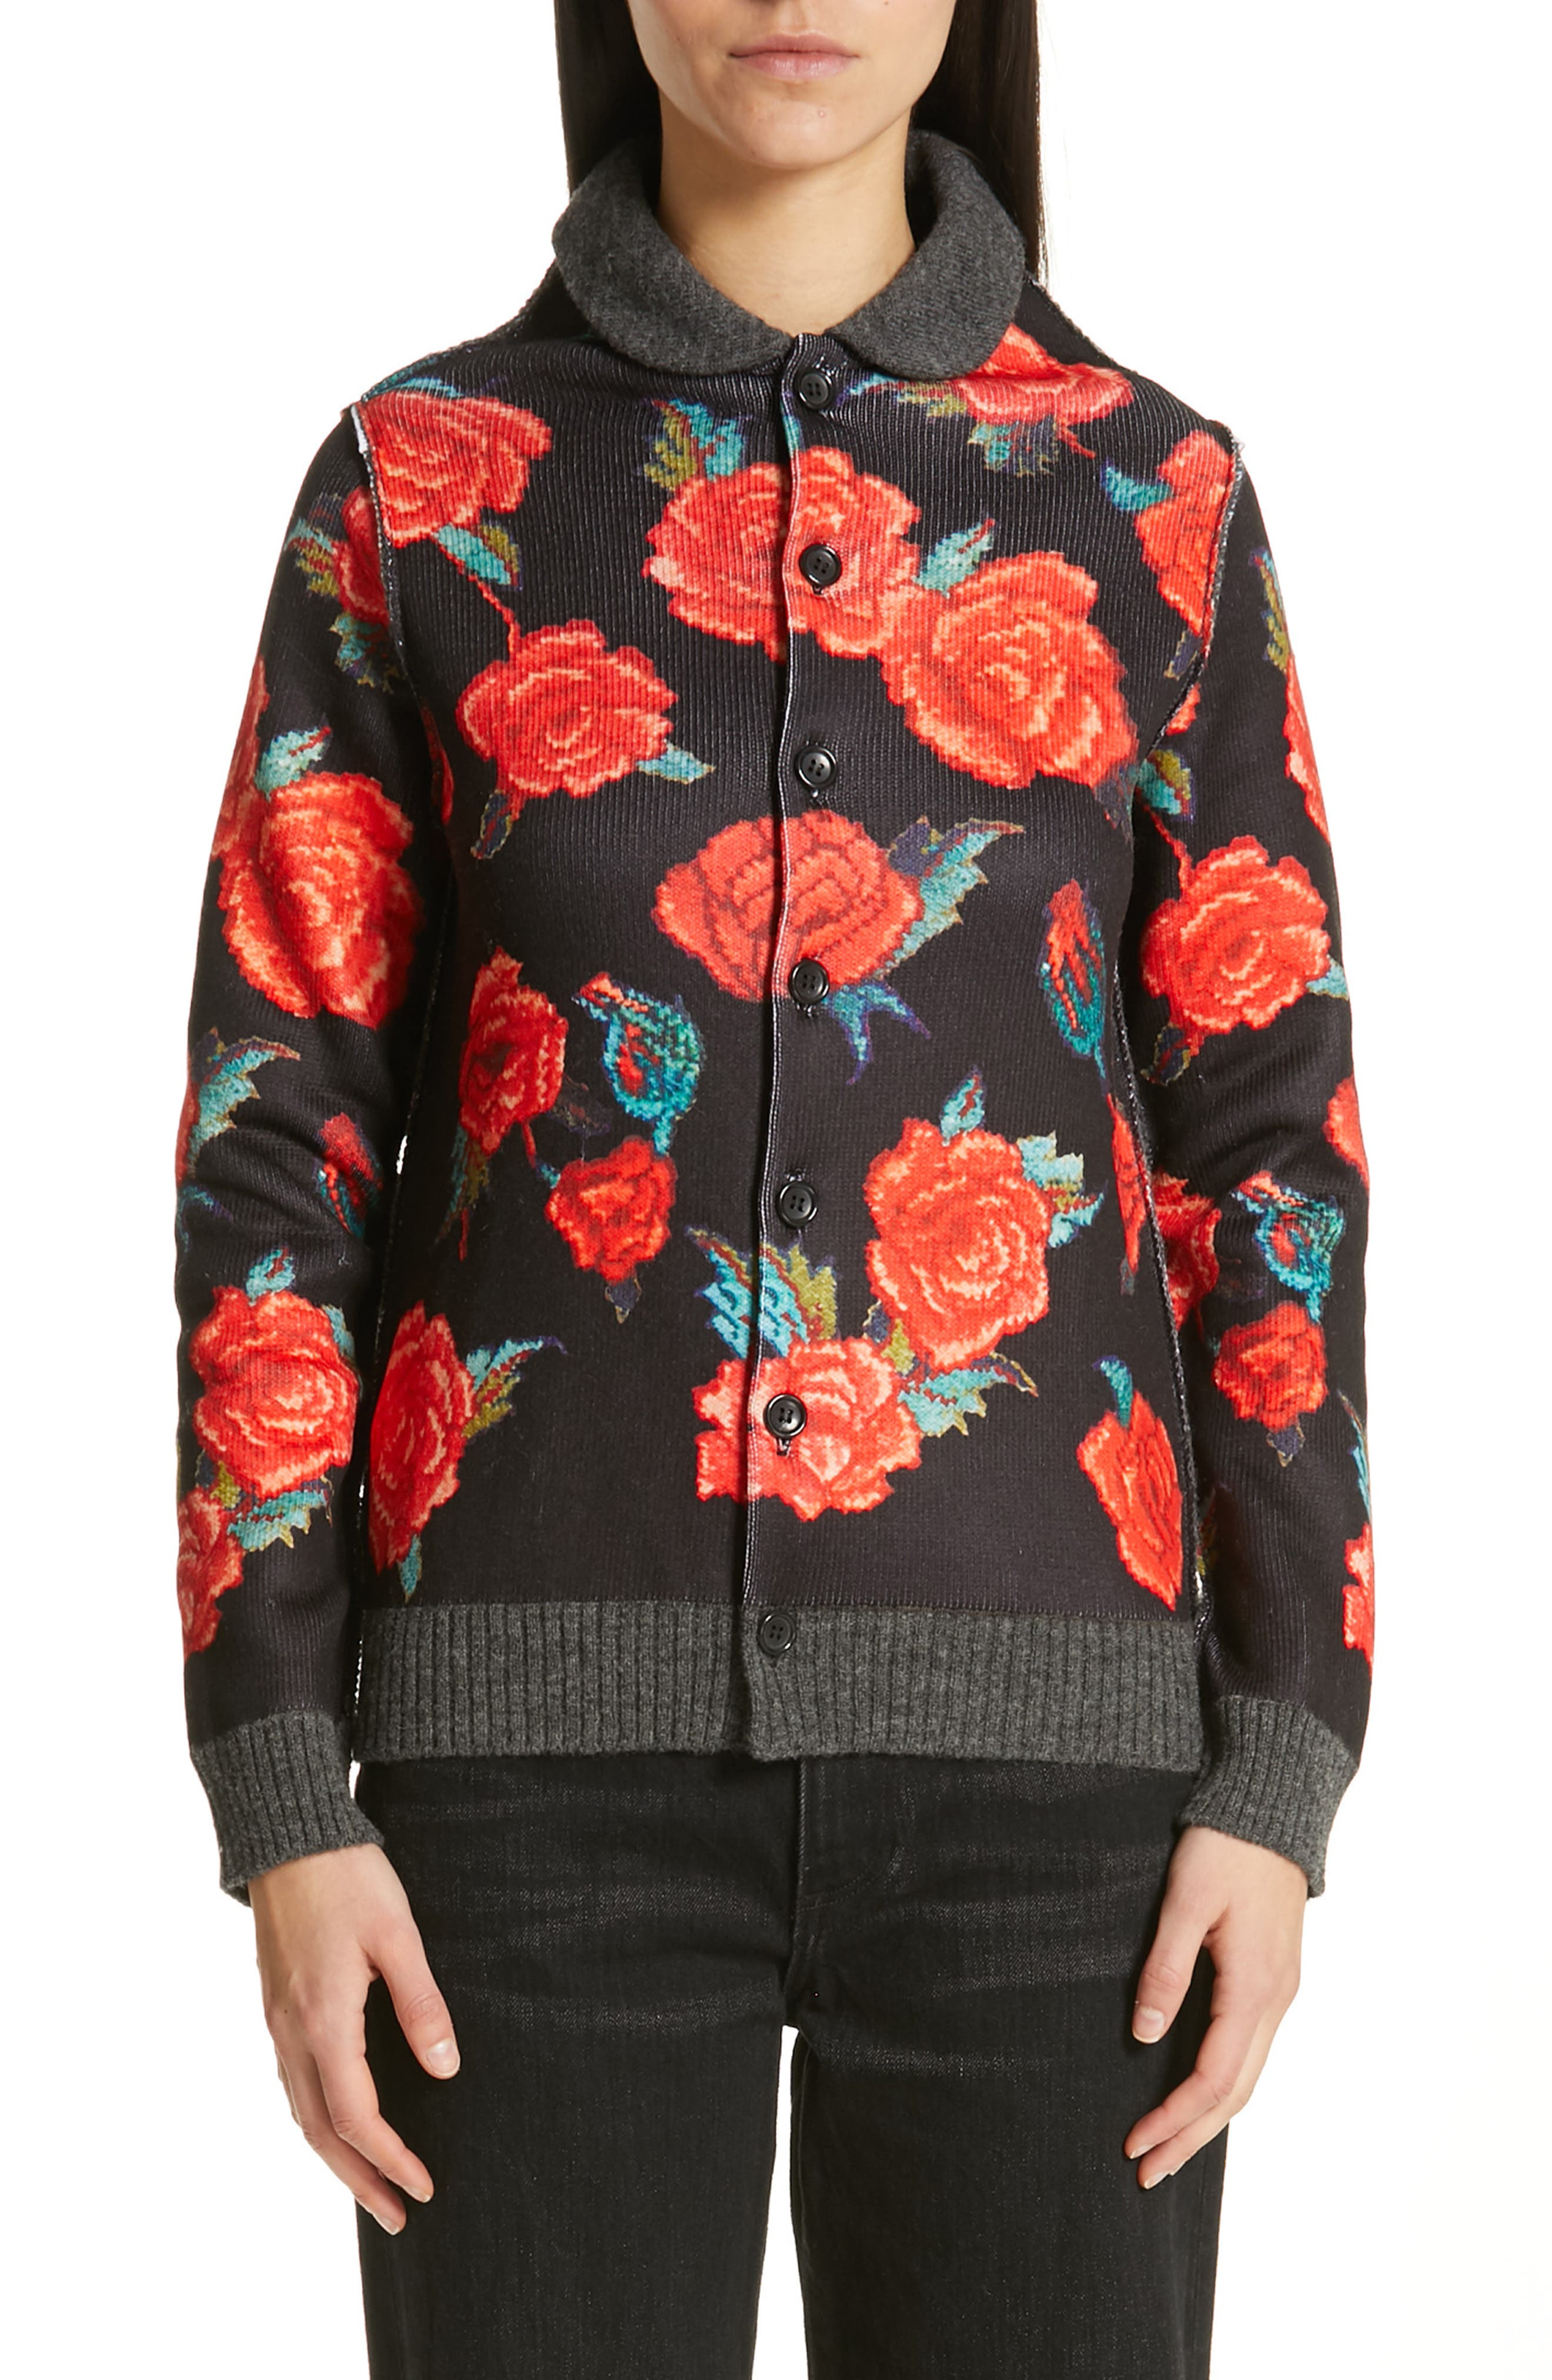 TRICOT COMME DES GARCONS Rose Print Cardigan in Black X Top Gray